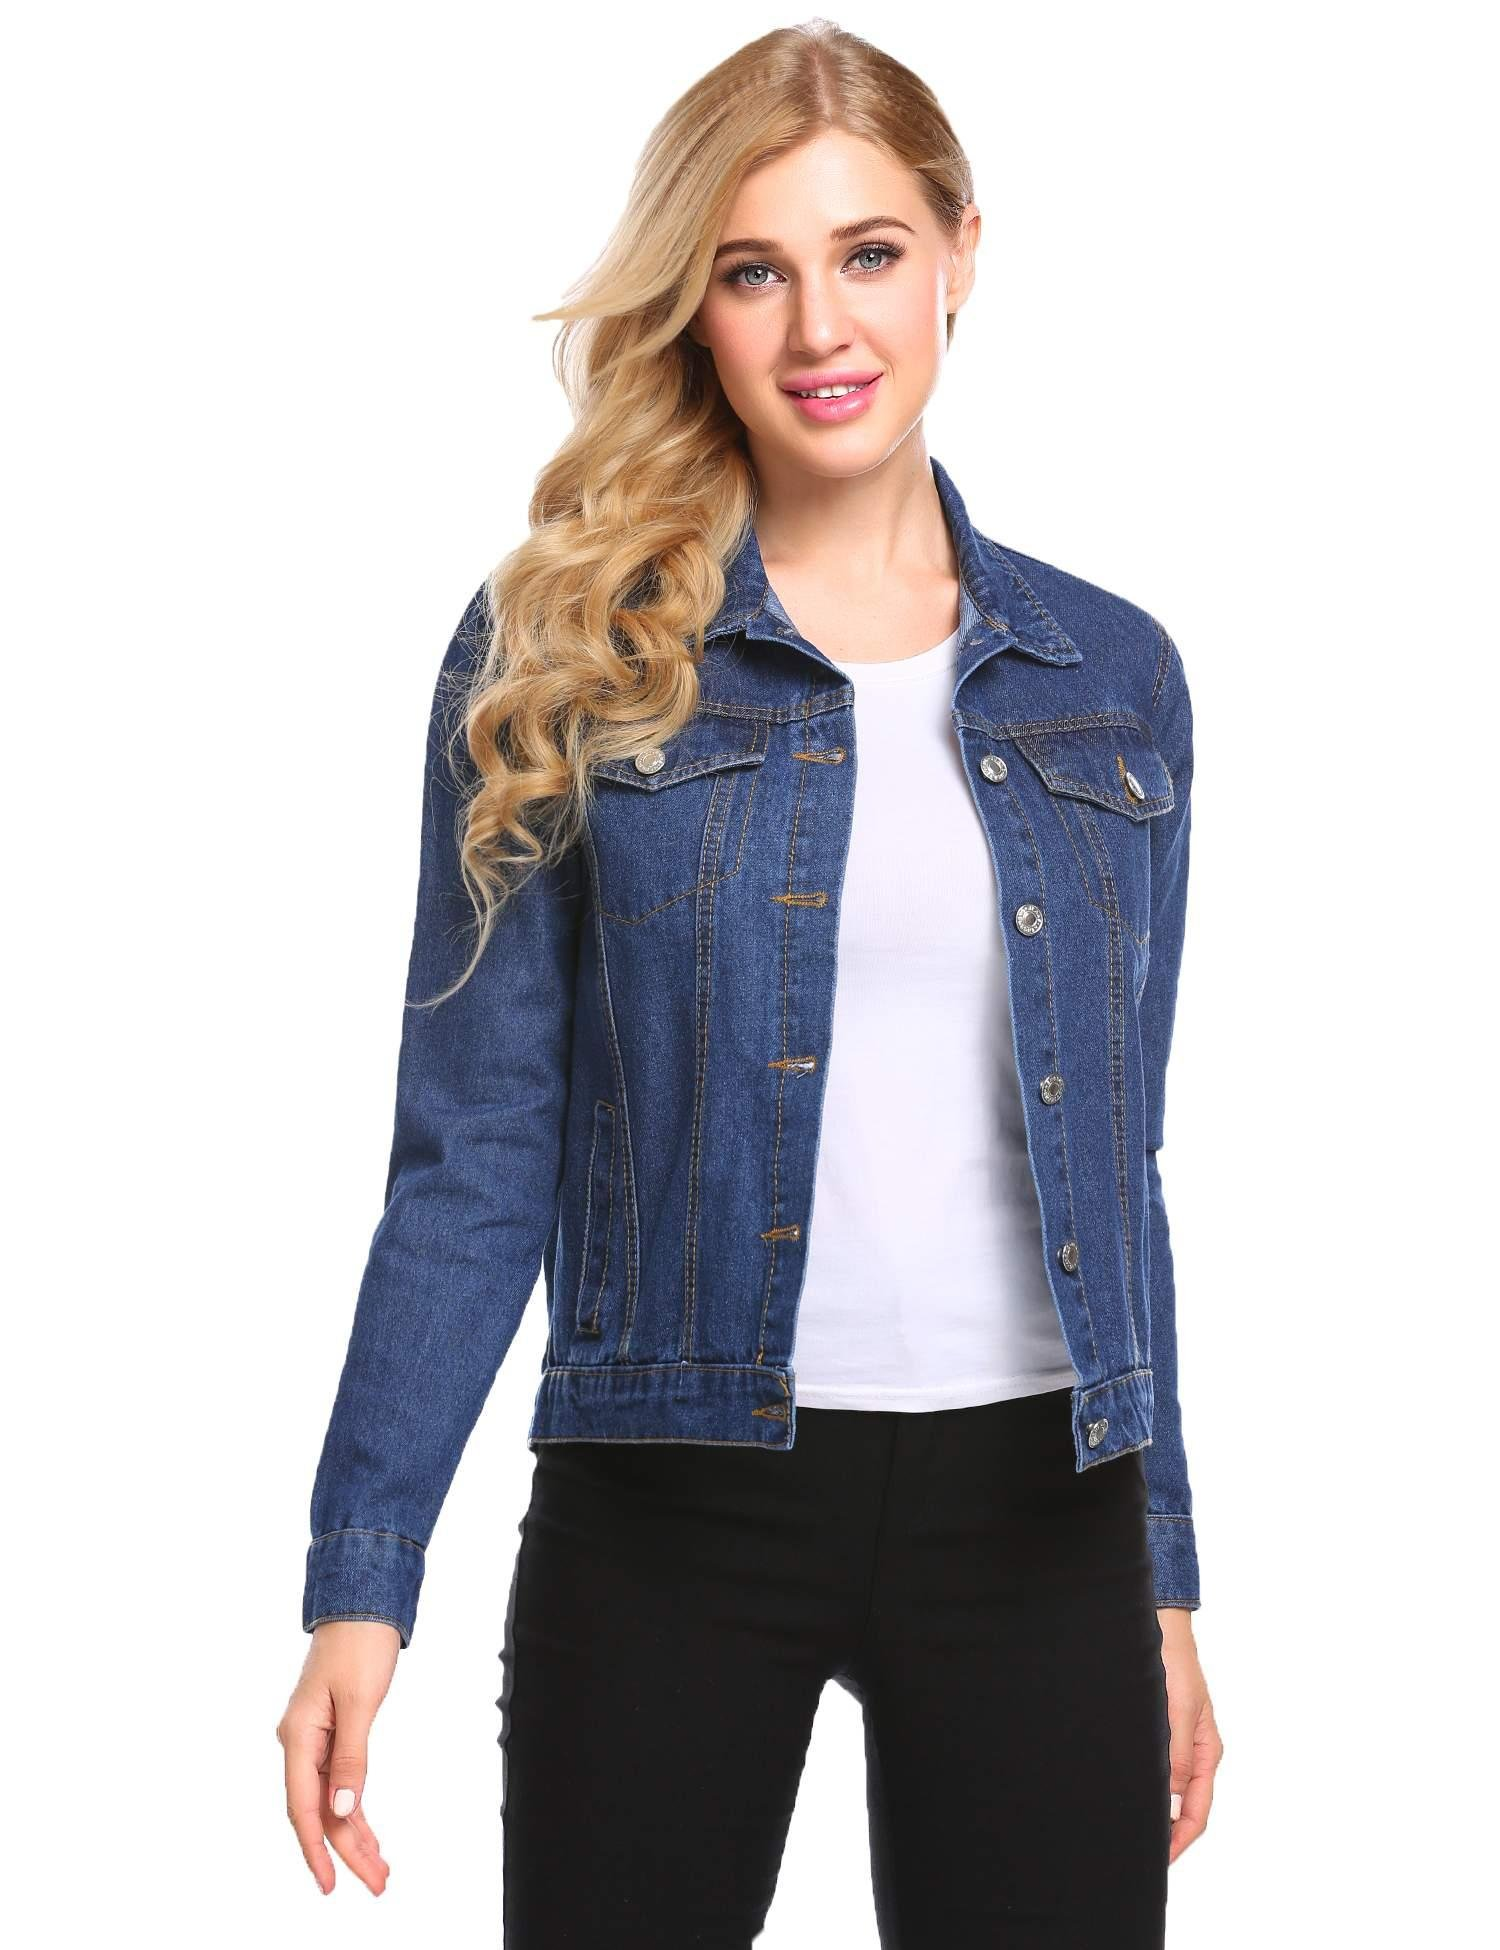 etuoji Women Denim Jacket Long Sleeve Fitted Washed Ripped Cropped Jean Top